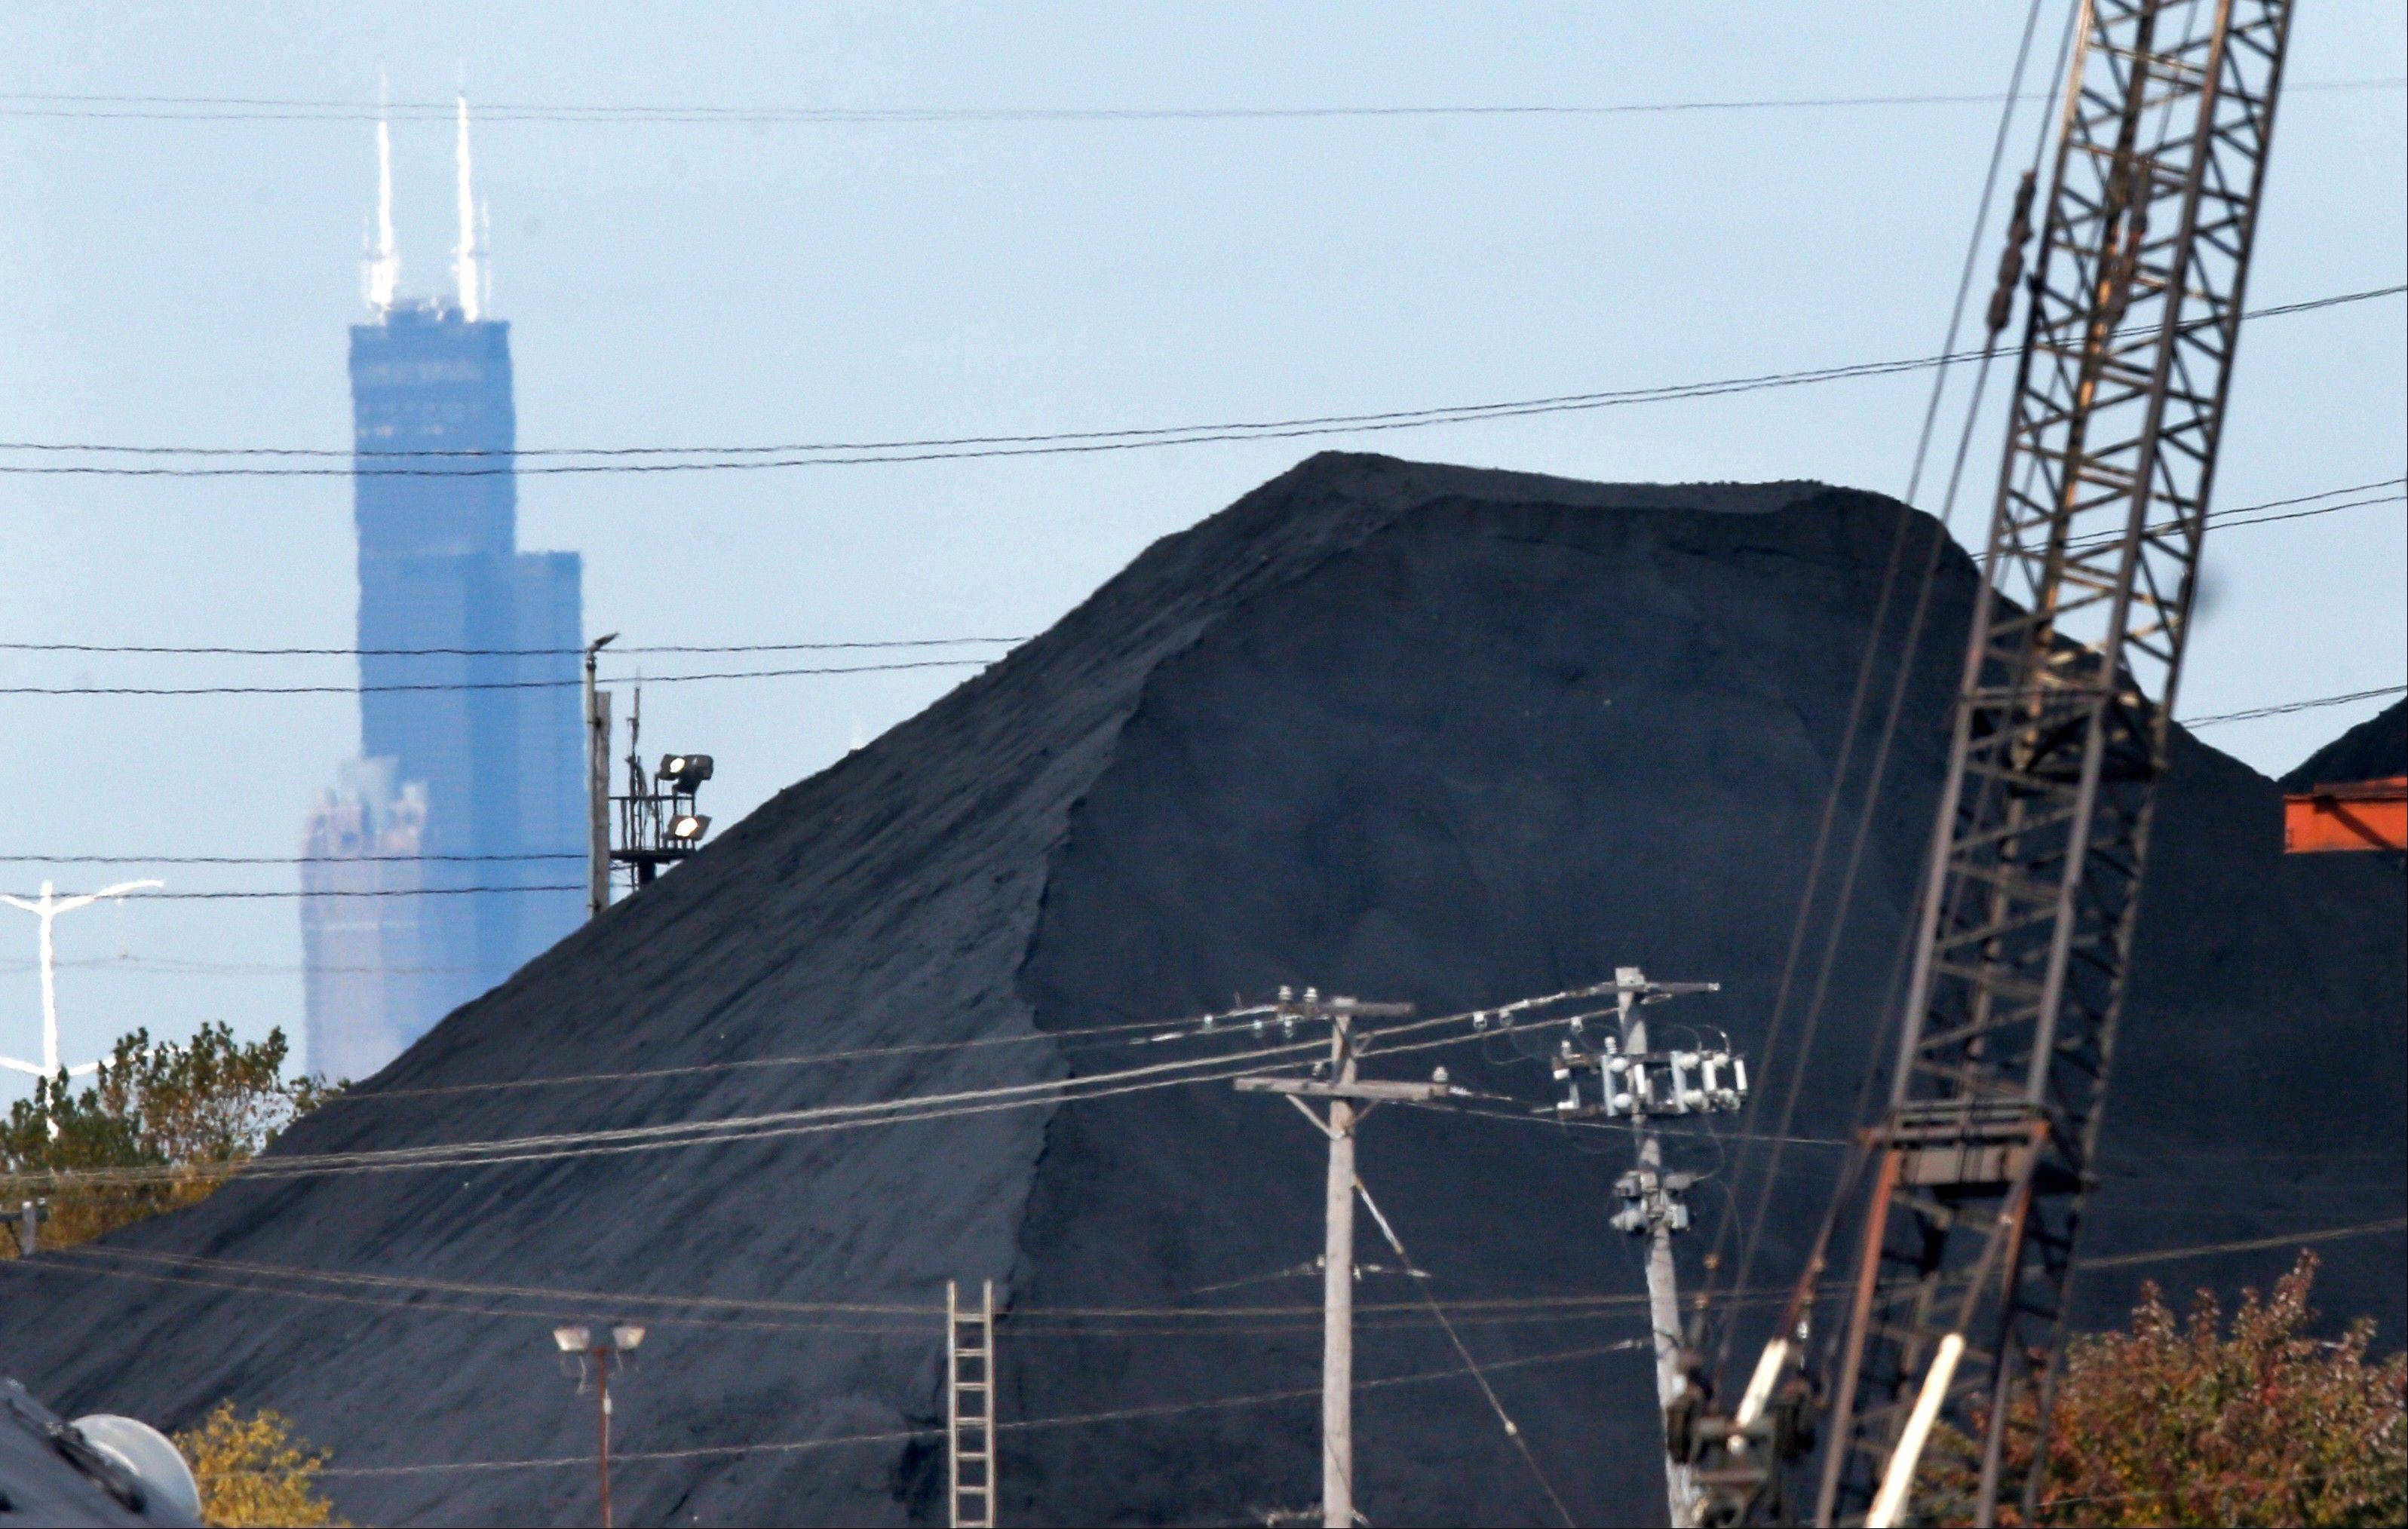 The Willis Tower in downtown Chicago provides a backdrop to a huge mound of petroleum coke, or pet coke, in the a residential area southeast part of the city. An increasing volume and size of petcoke piles is causing environmental concerns for residents in this working-class neighborhood.